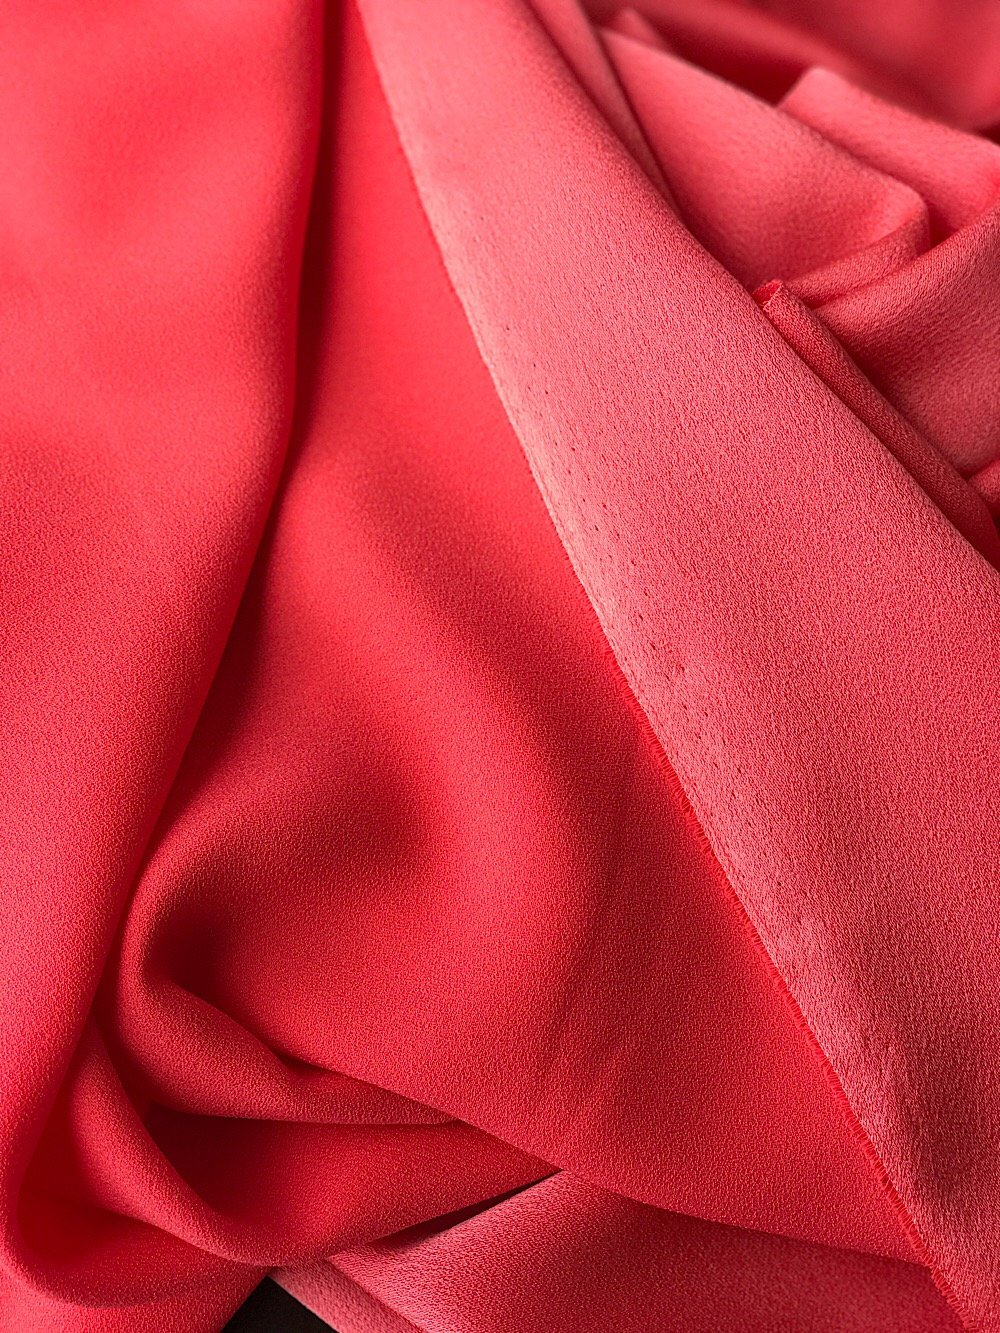 Red Polyester Crepe Fabric